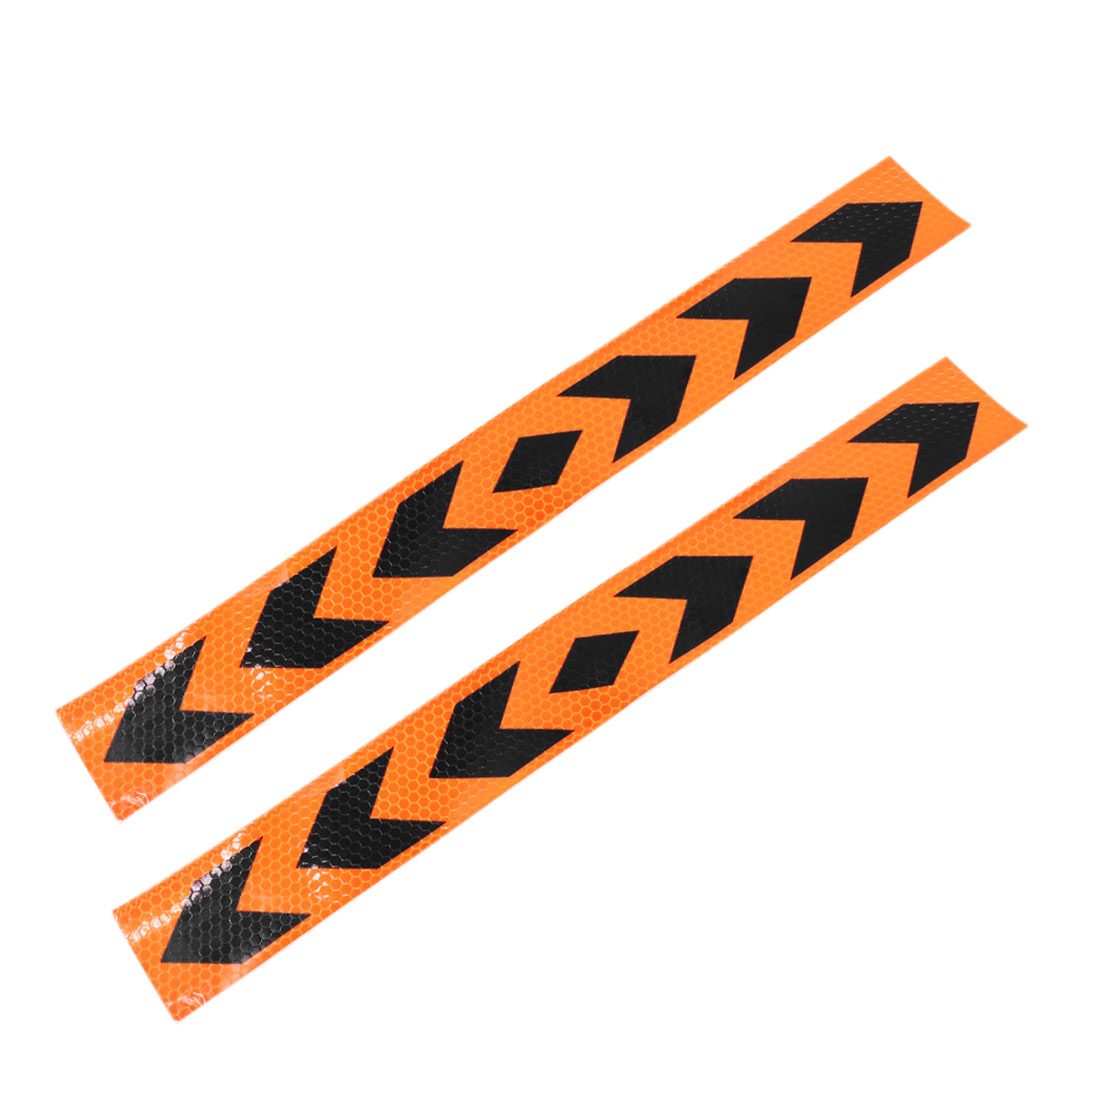 16pcs Orange Black Arrows Print Adhesive Car Reflective Sticker Strip 400mm x 54mm